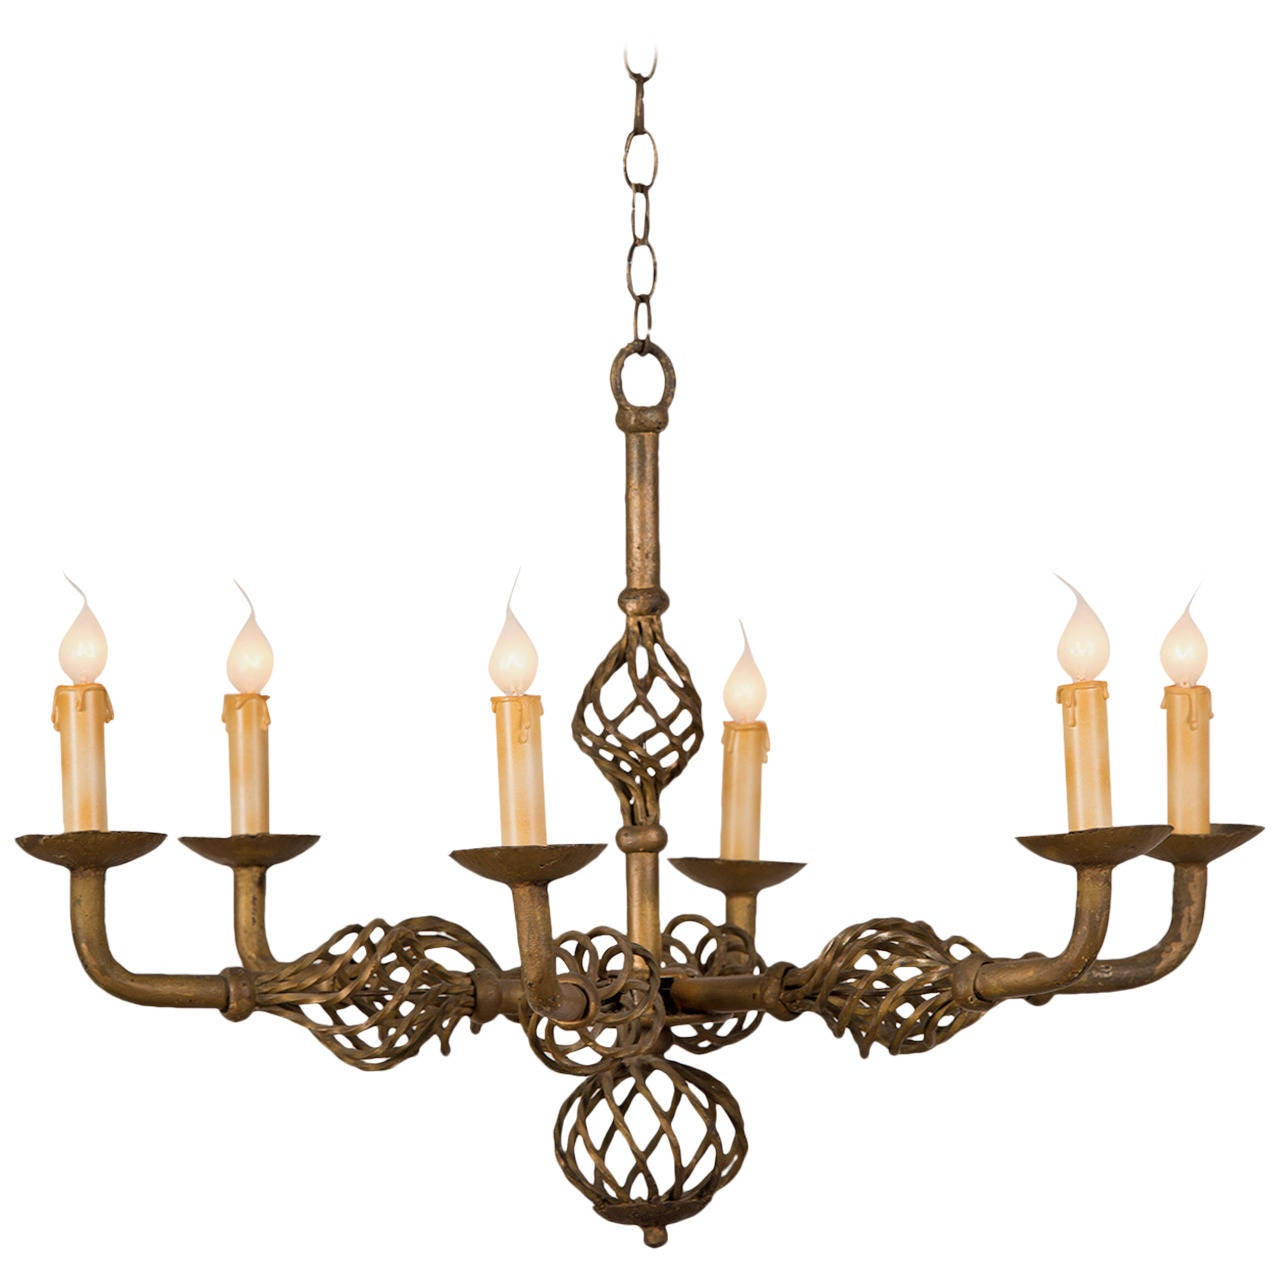 Gilded forged iron six light chandelier france circa 1930 at 1stdibs - Circa lighting chandeliers ...